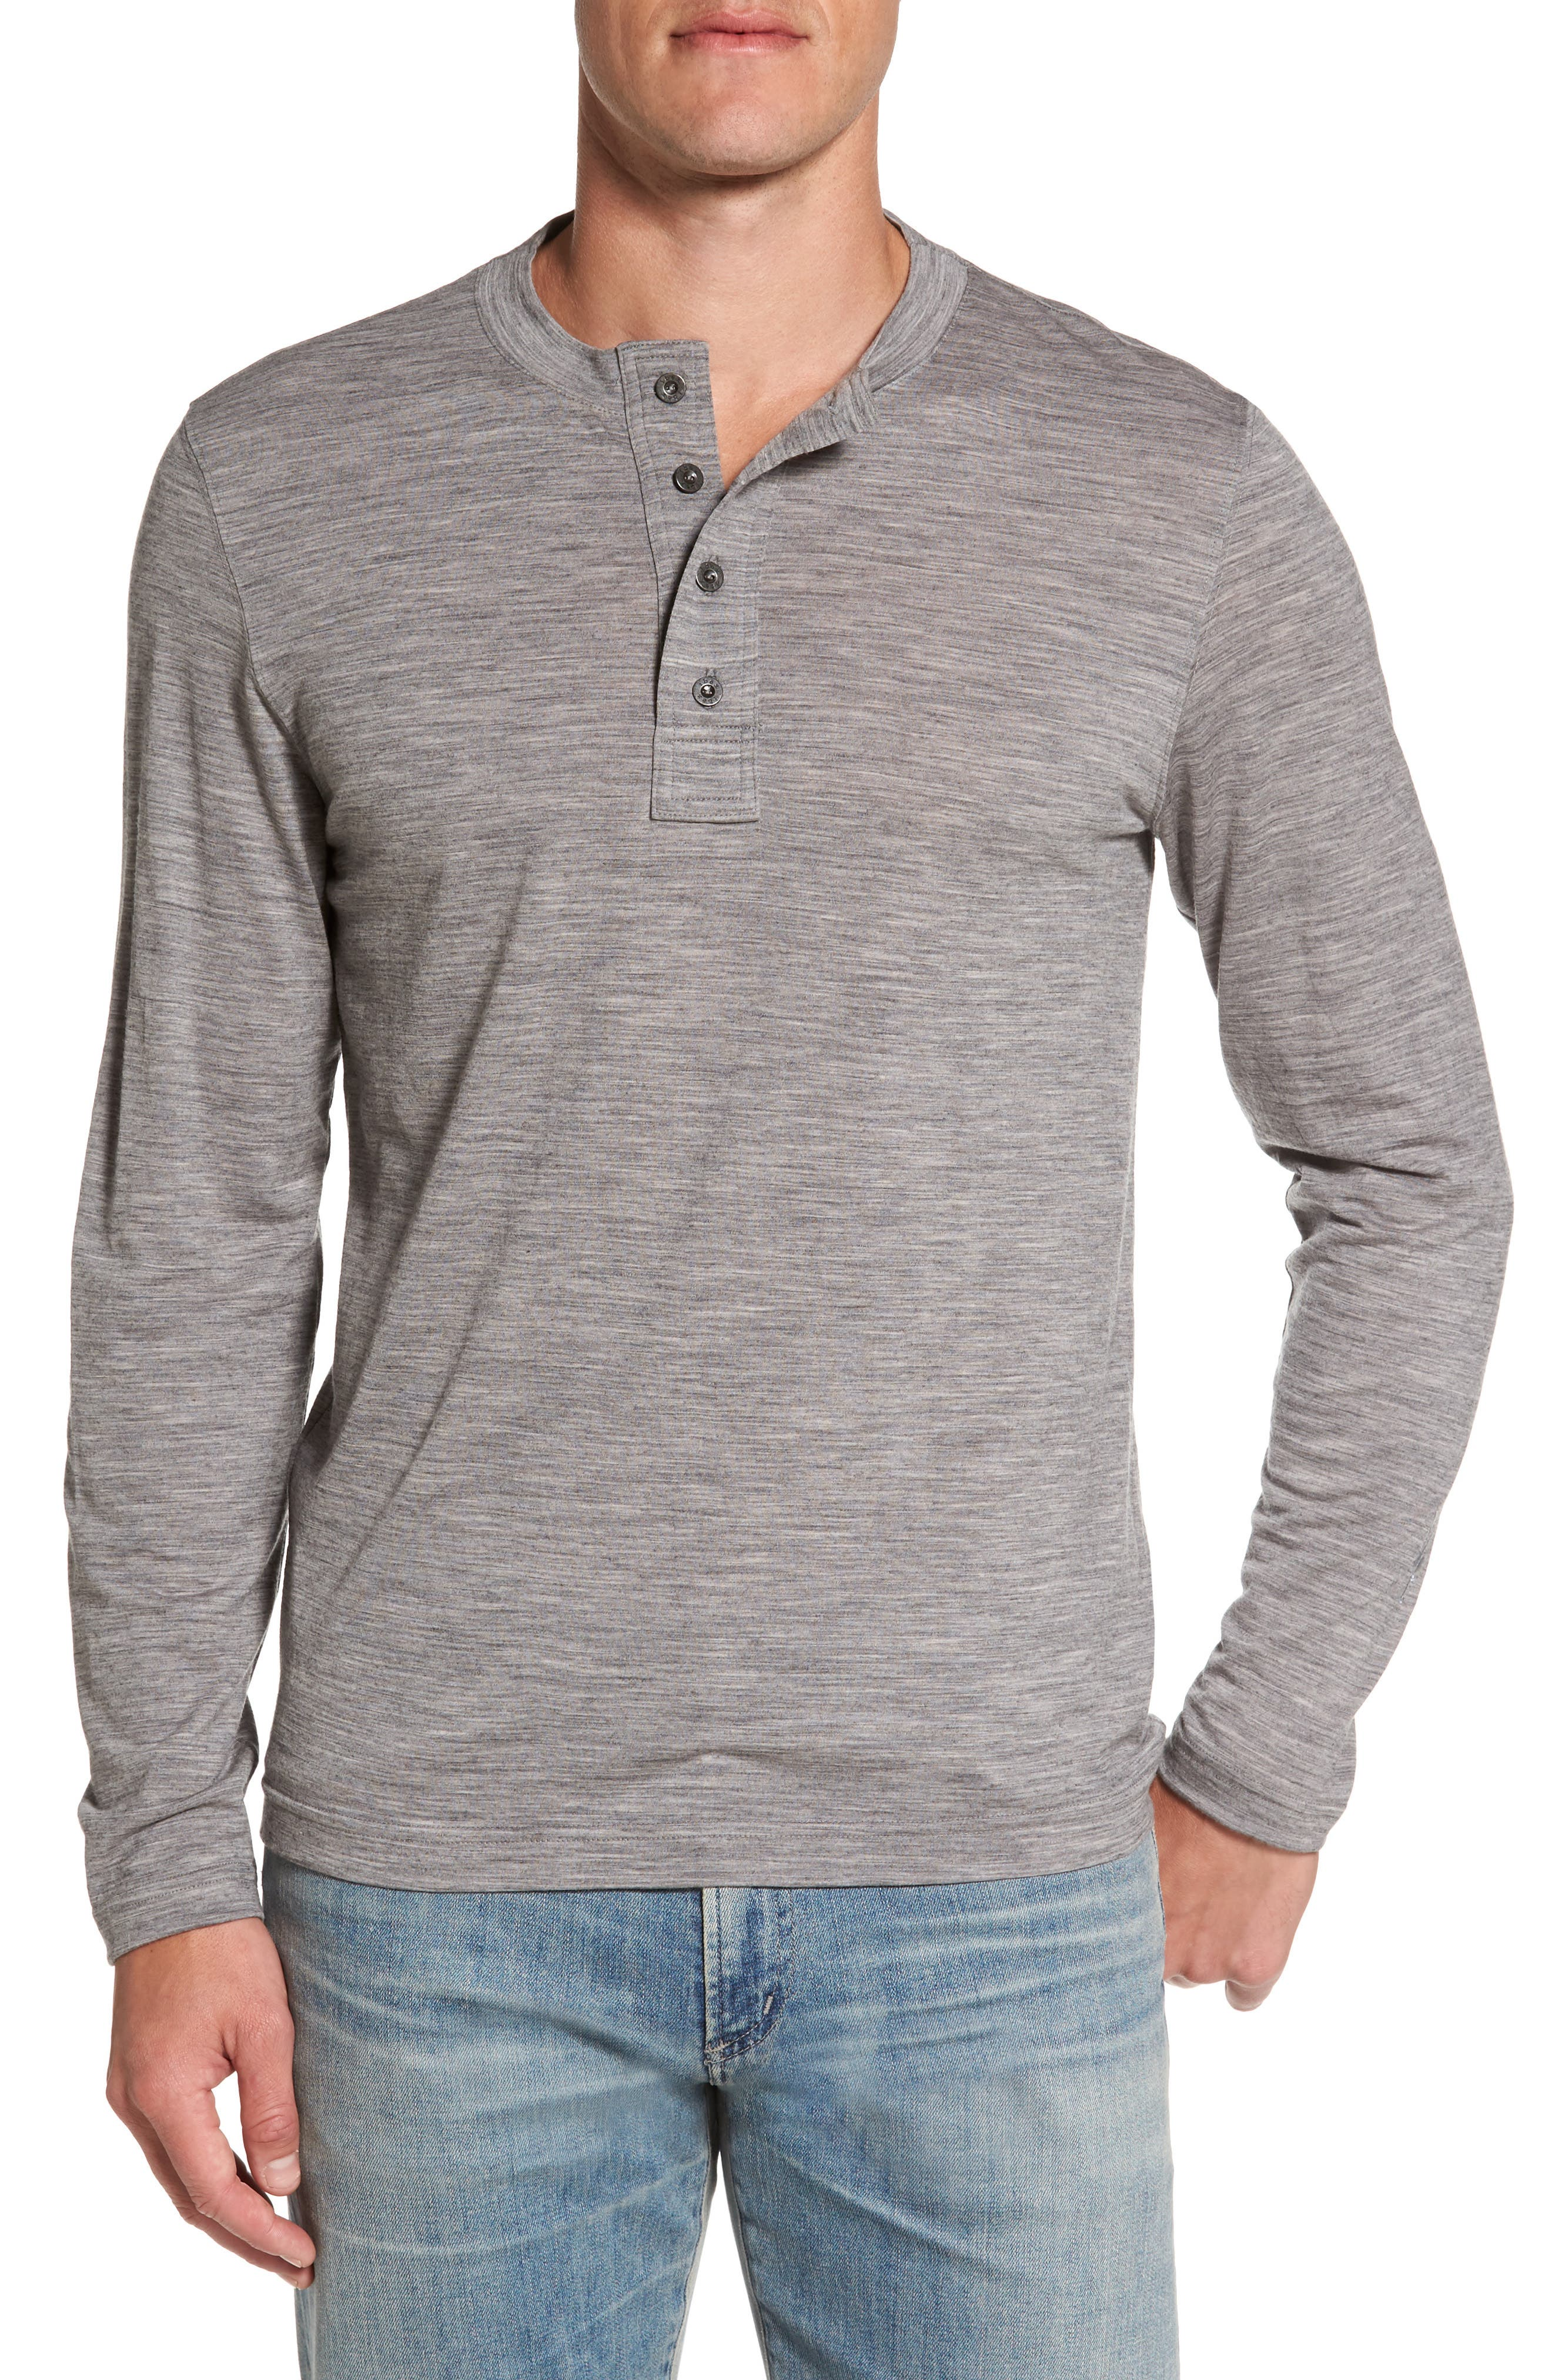 Odyssey Merino Wool Blend Henley,                         Main,                         color, Stone Grey Heather